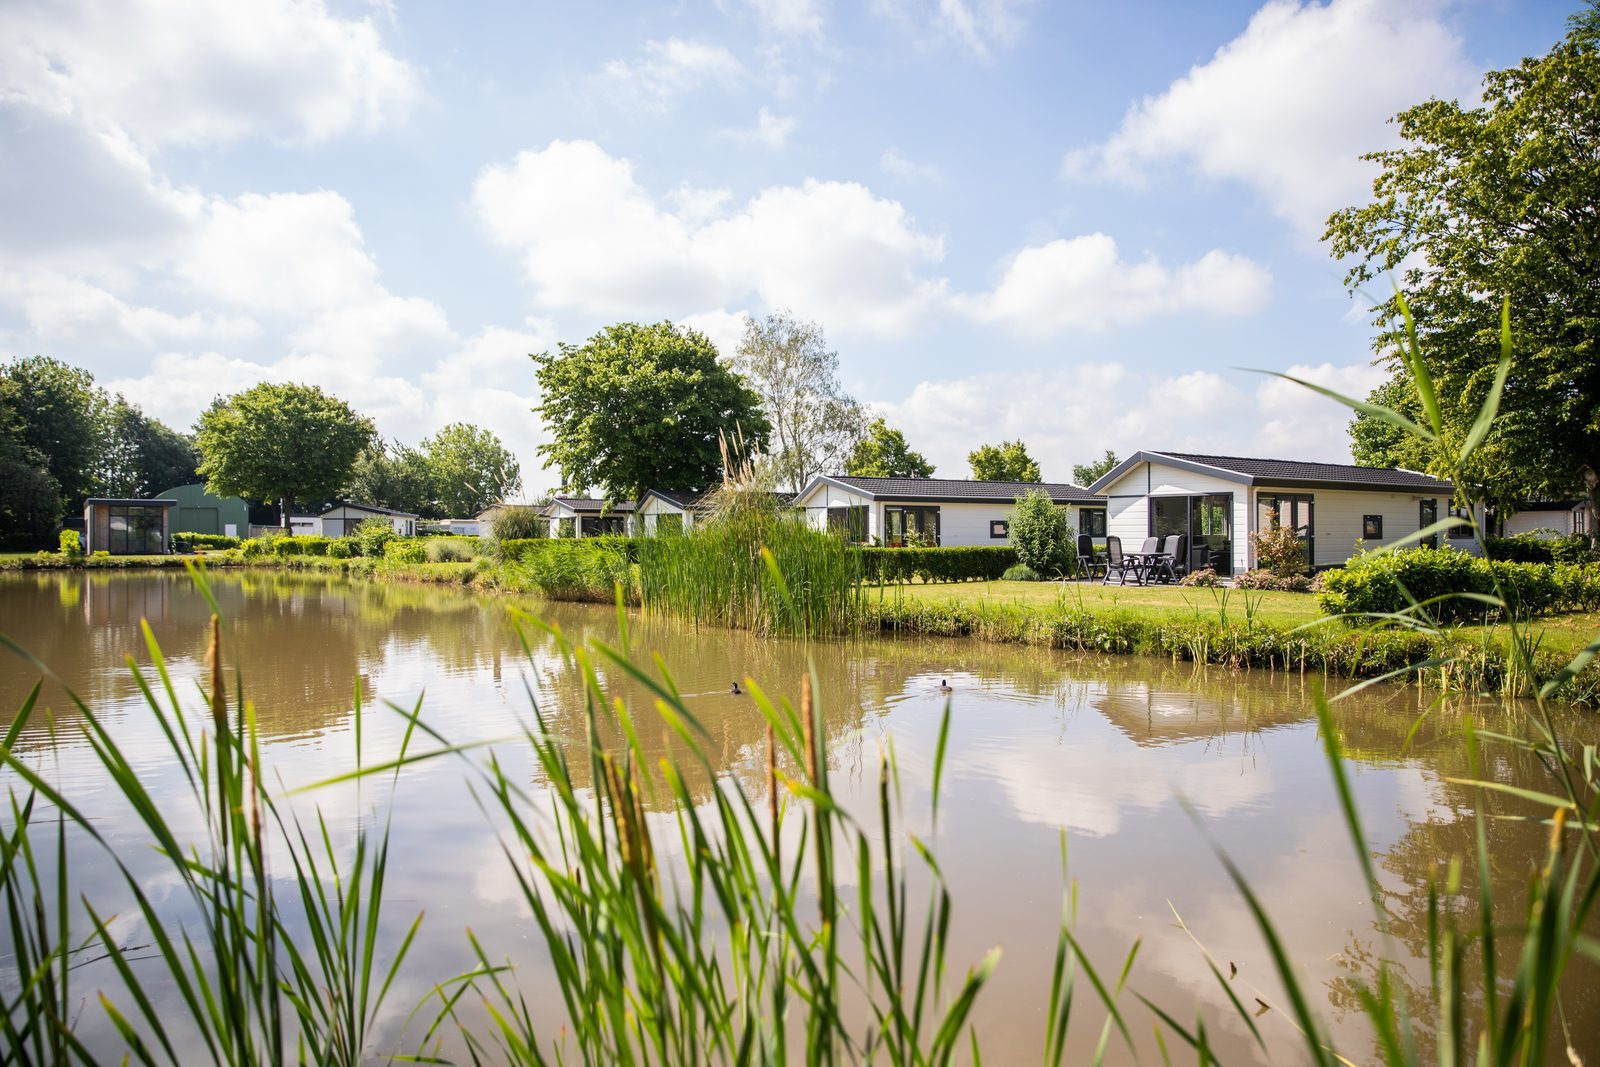 Buy a holiday home at the waterside